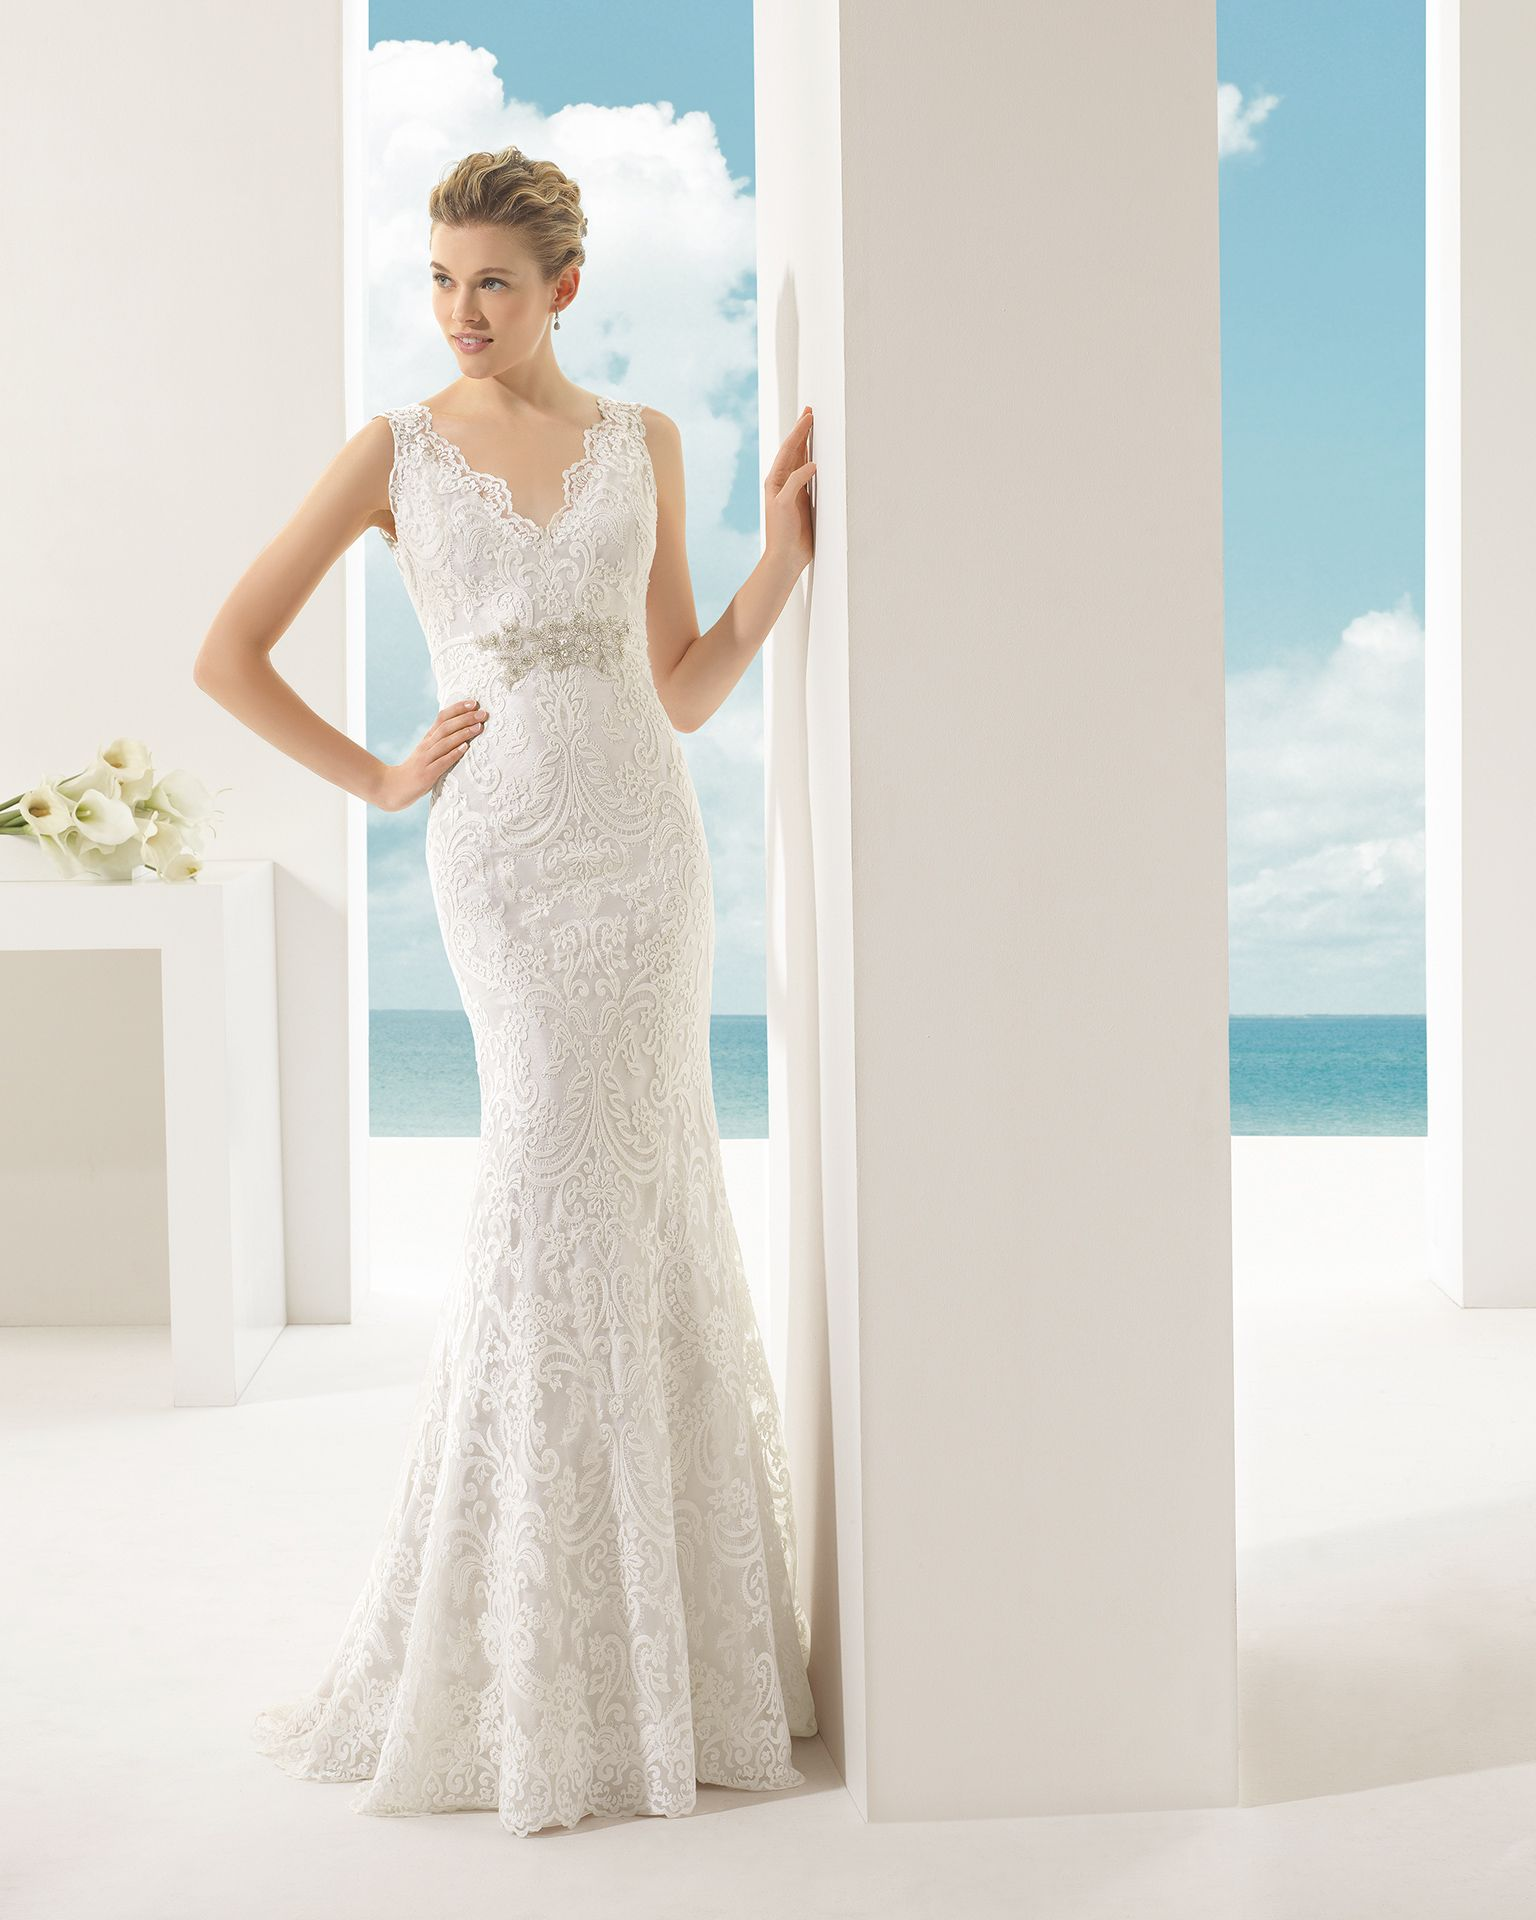 Lace bridal gown rosa clará soft collection what a